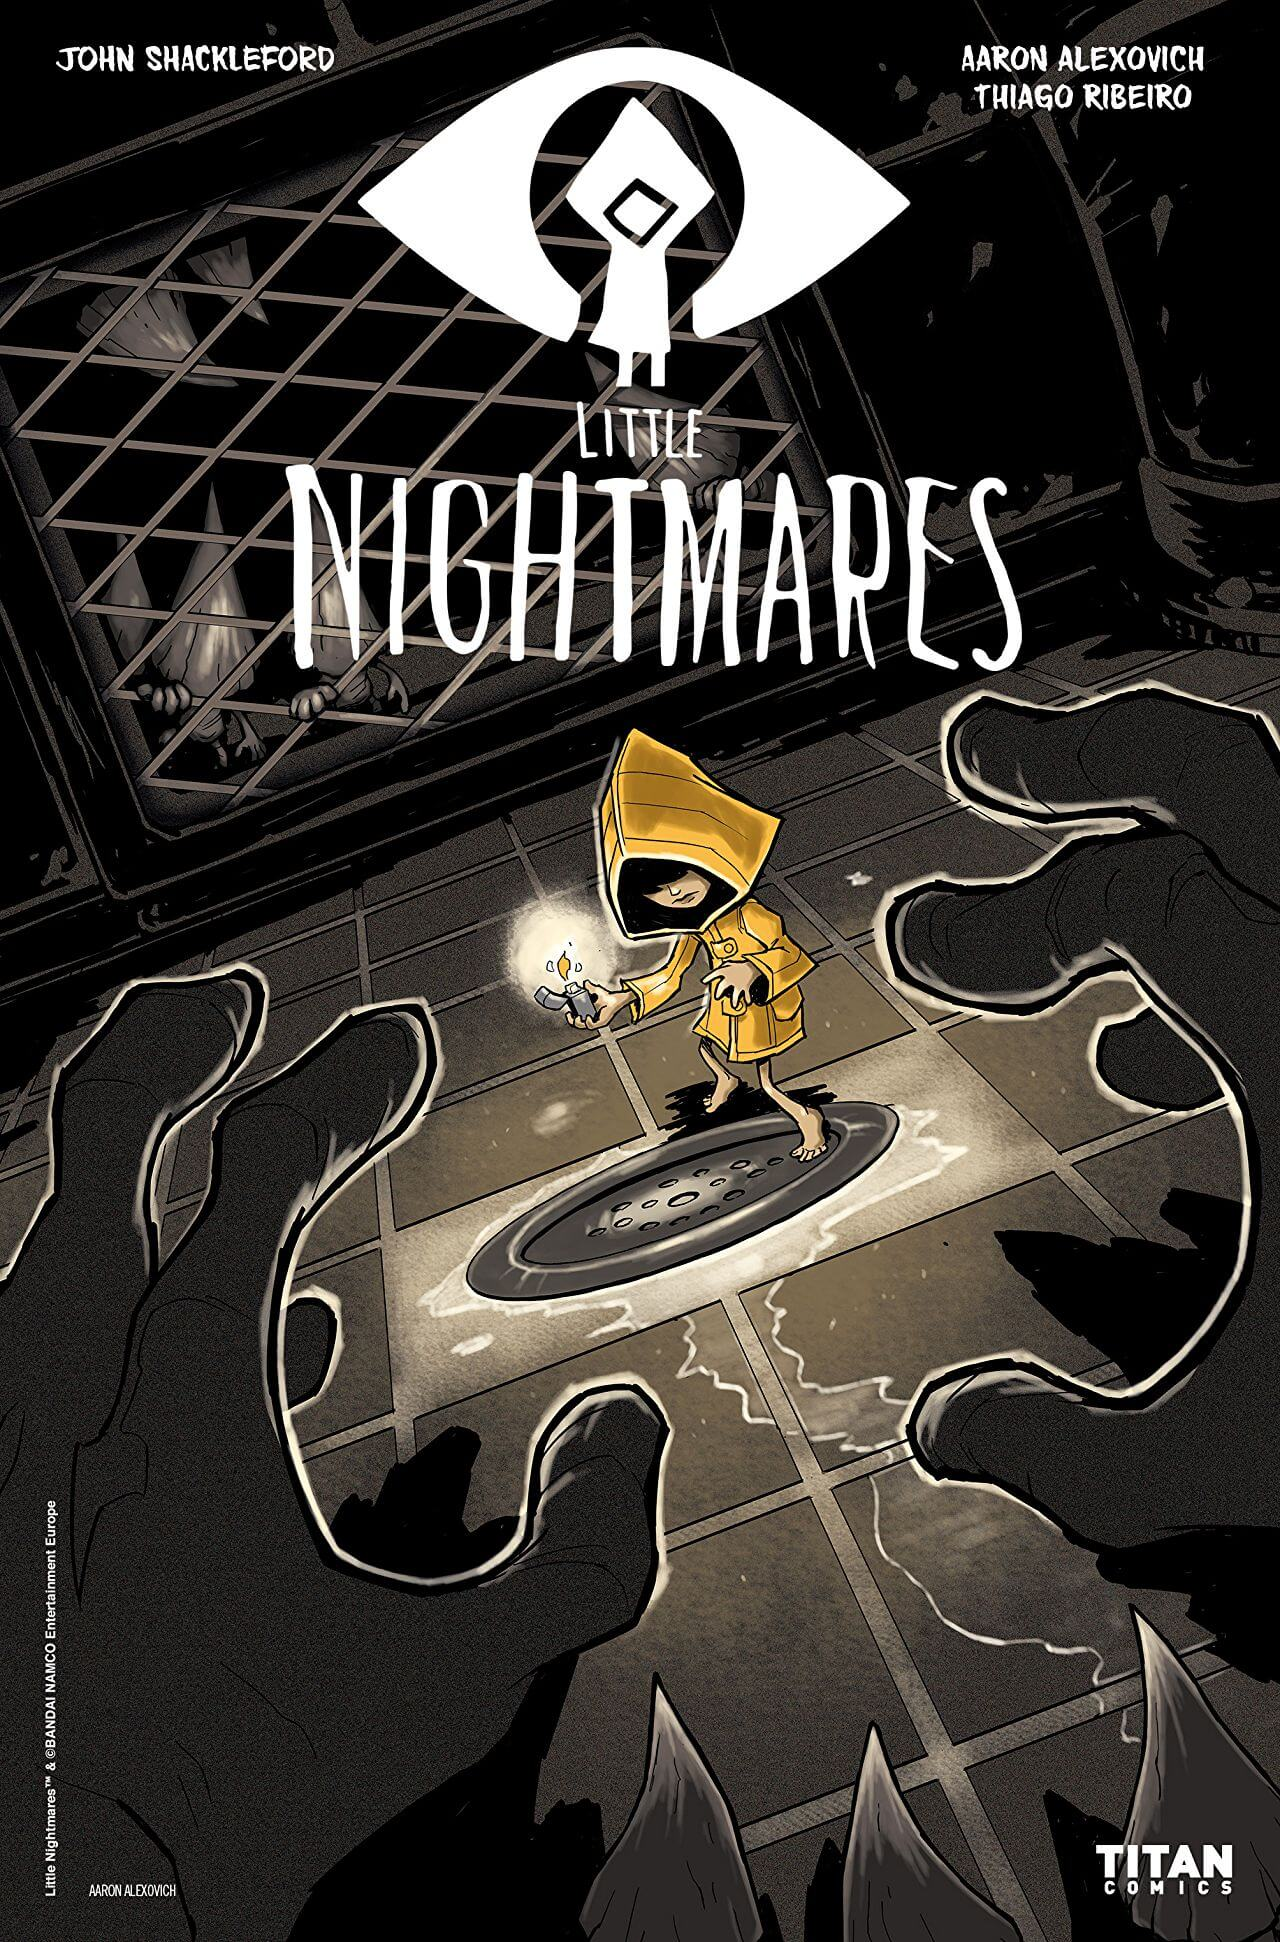 Little Nightmares Continues To Terrify Us in Comic Form ...